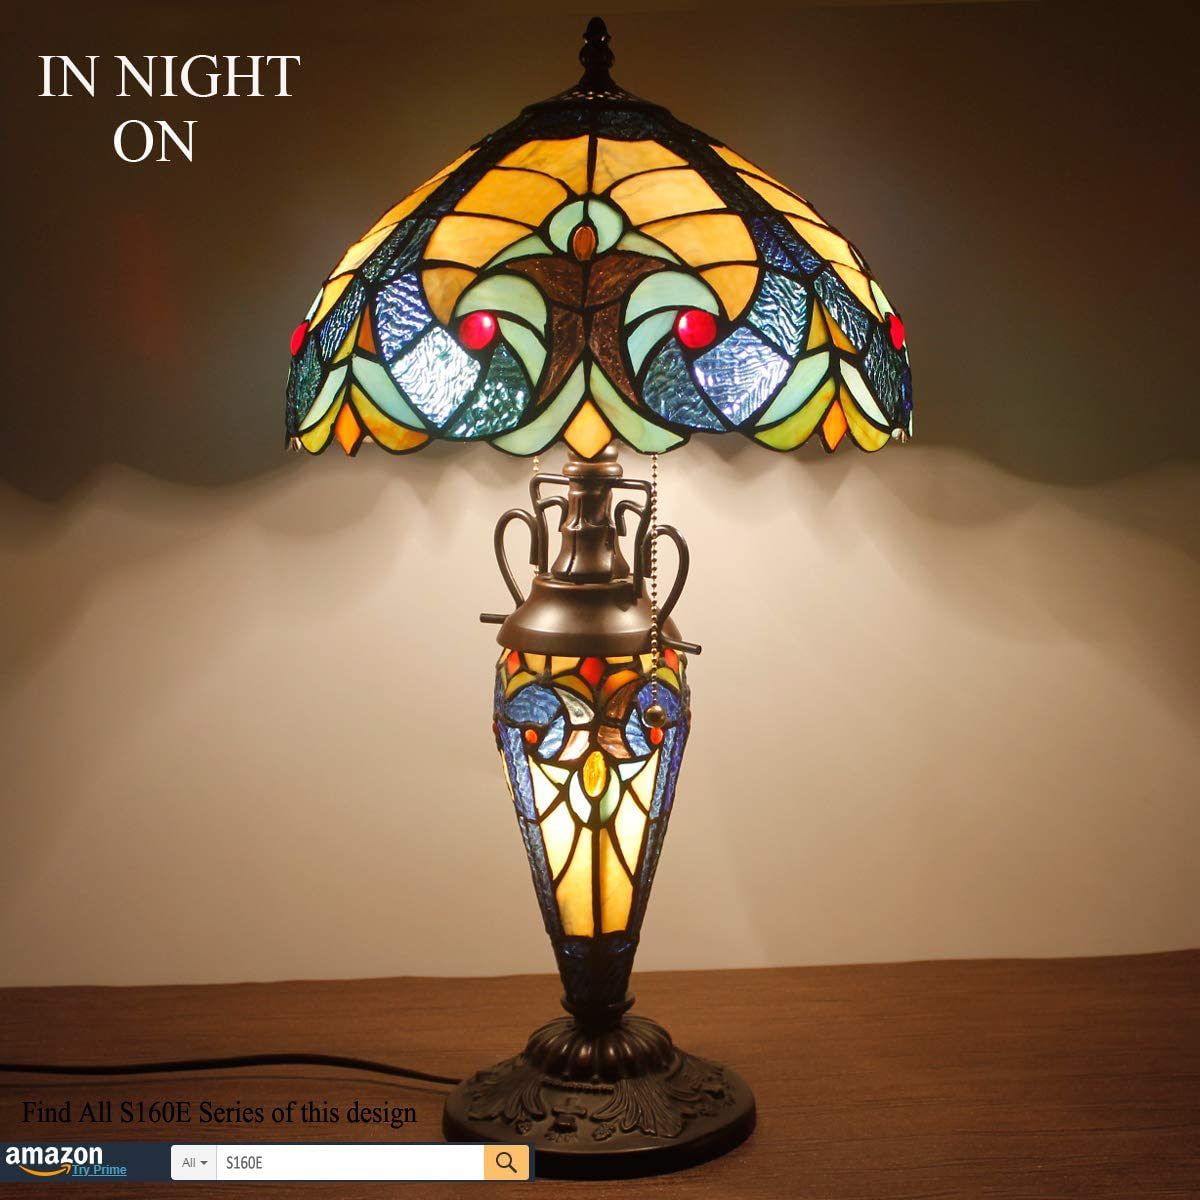 Tiffany Styled Lamp 3 Light W12 H22 Inch Yellow Liaison Stained Glass Table Lamp Night Light Base for Living Room Bedroom Coffee Table Reading Desk Beside S160E WERFACTORY